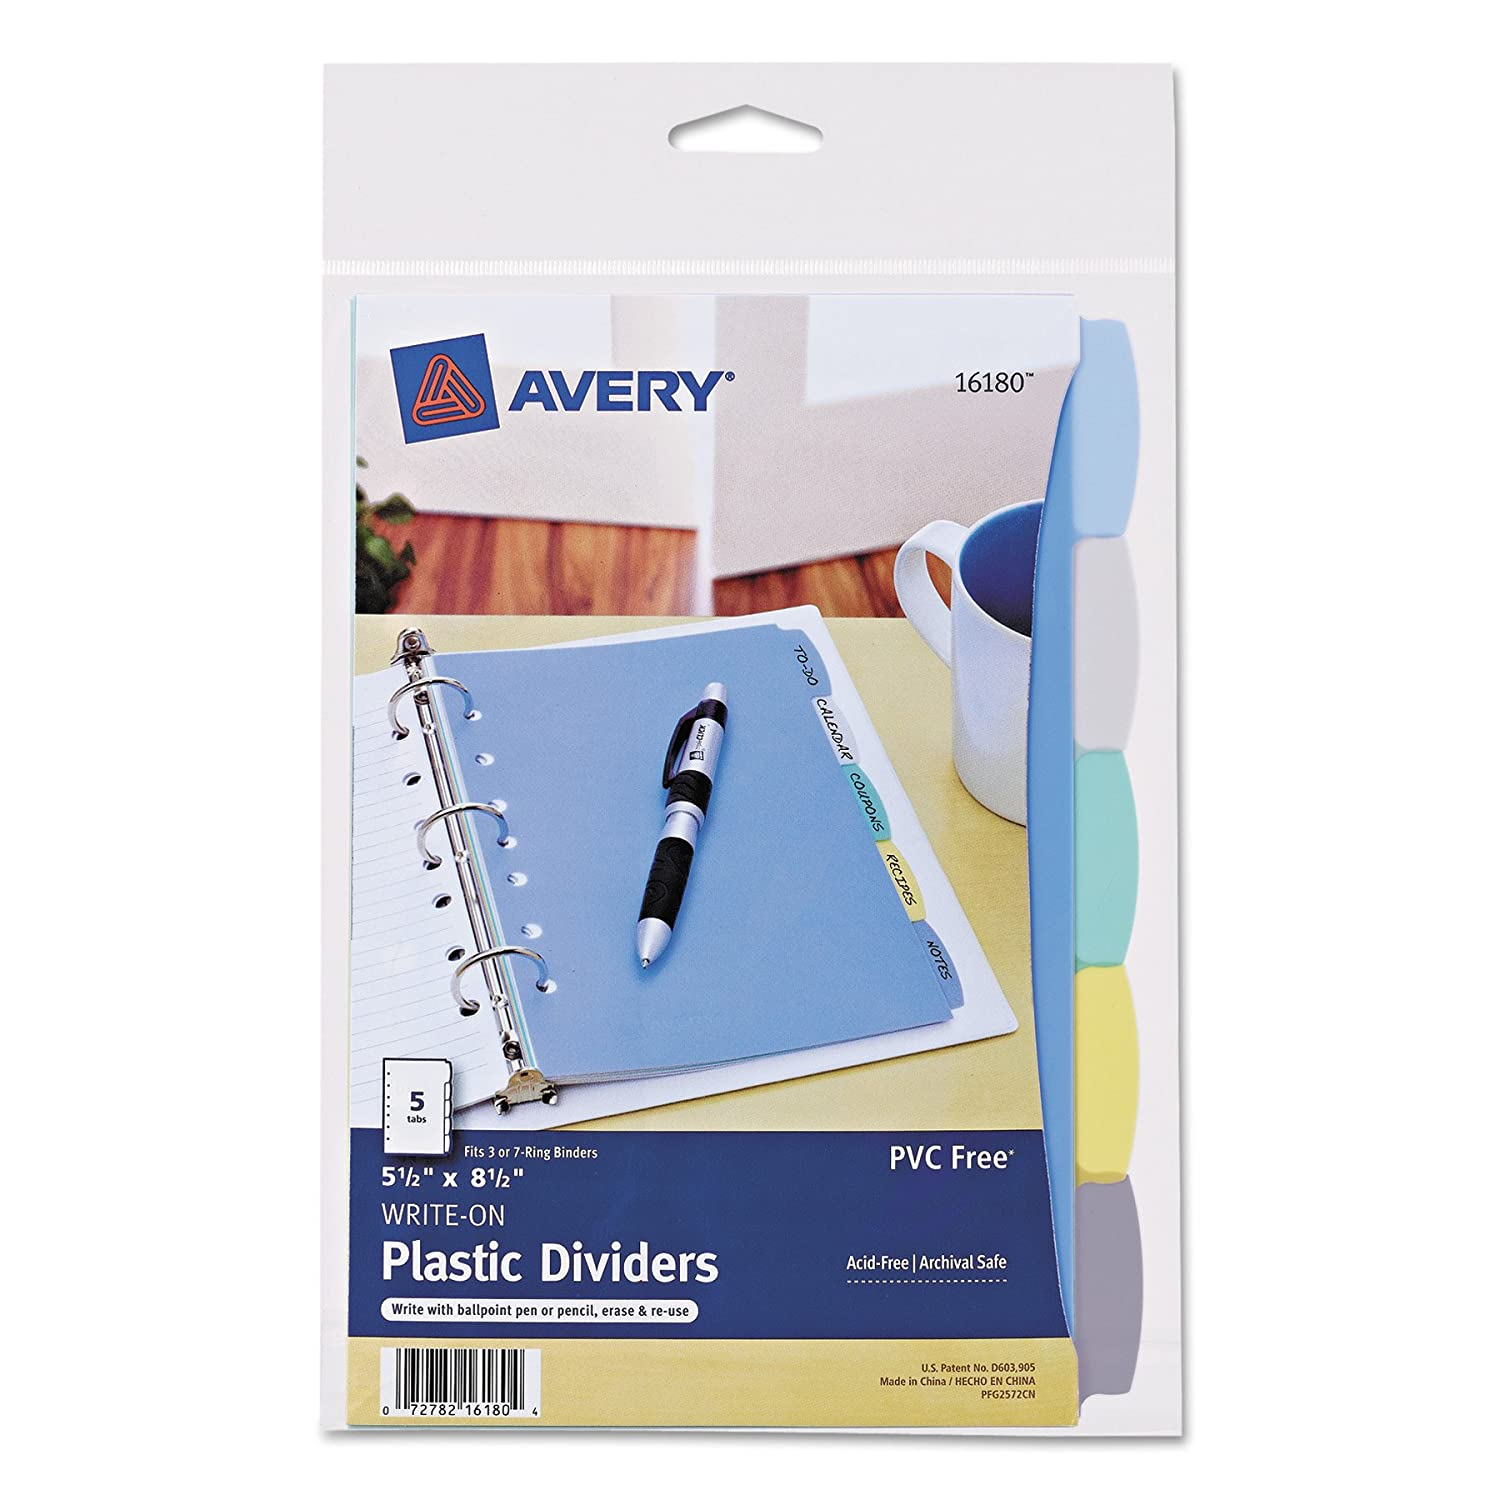 Avery Mini Plastic Durable Write-On Dividers, 5.5 x 8.5 Inches, 5 Tabs, 1 Set (16180)